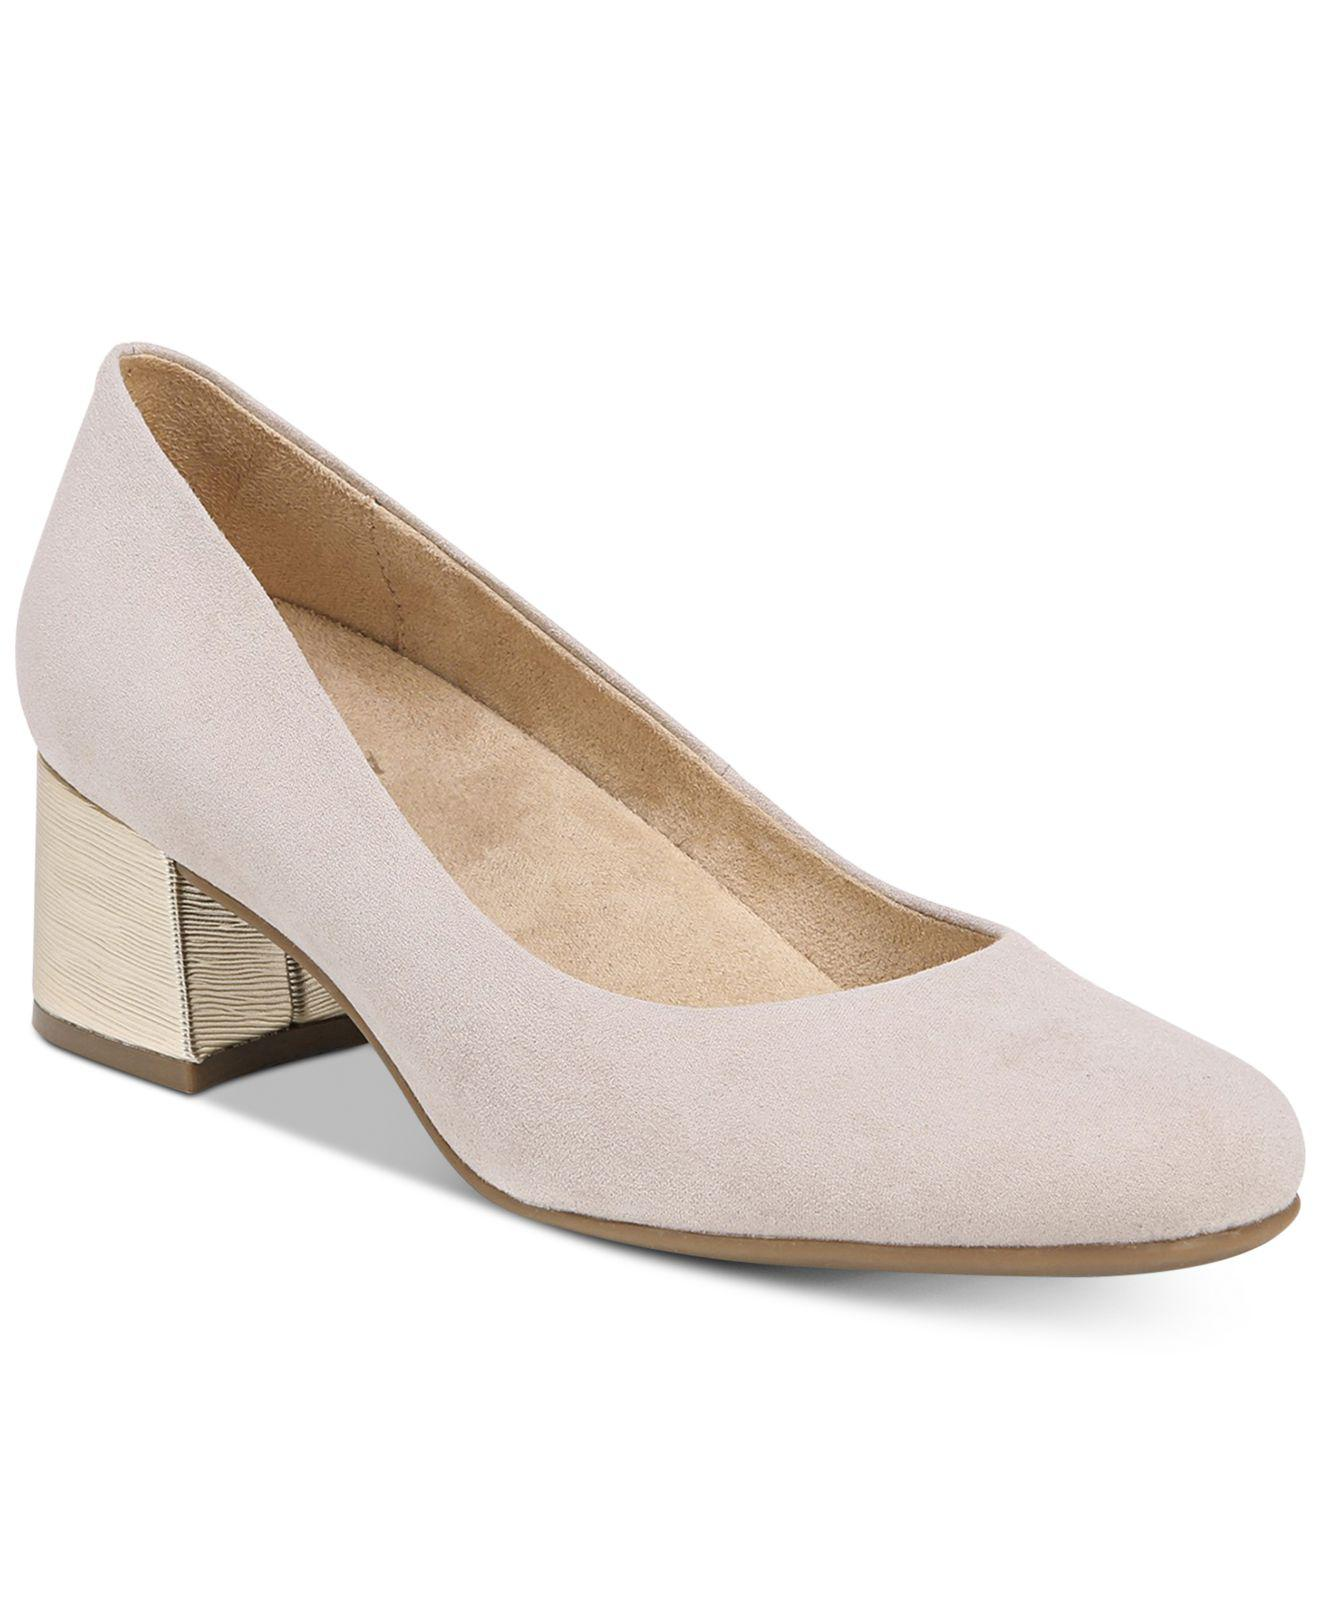 533fe42011ac Lyst - Naturalizer Donelle Pumps in Gray